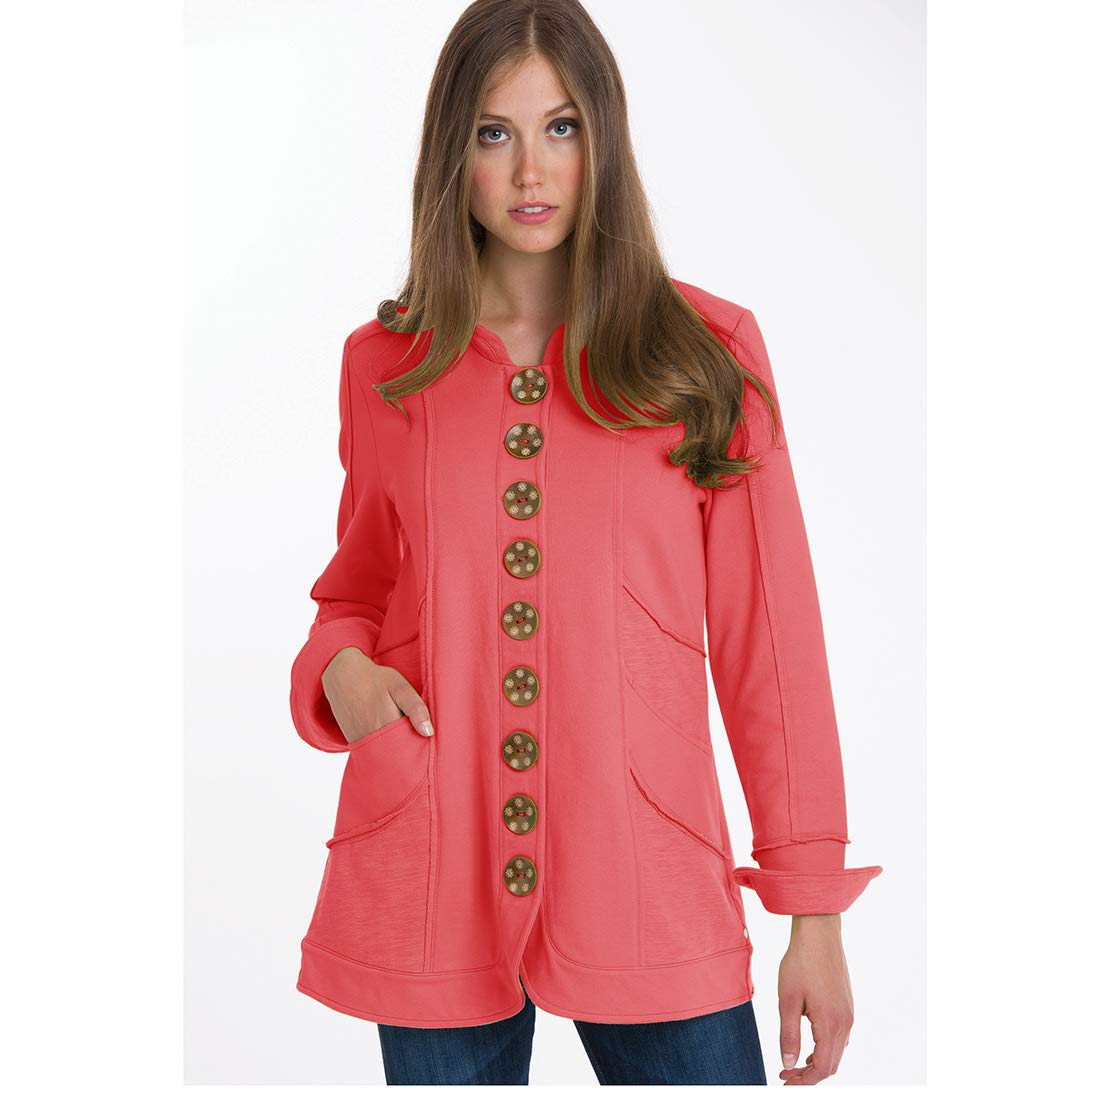 Neon Buddha Womens Cotton Blazer Female Long Sleeve Jacket with Exposed Seams and Oversized Buttons